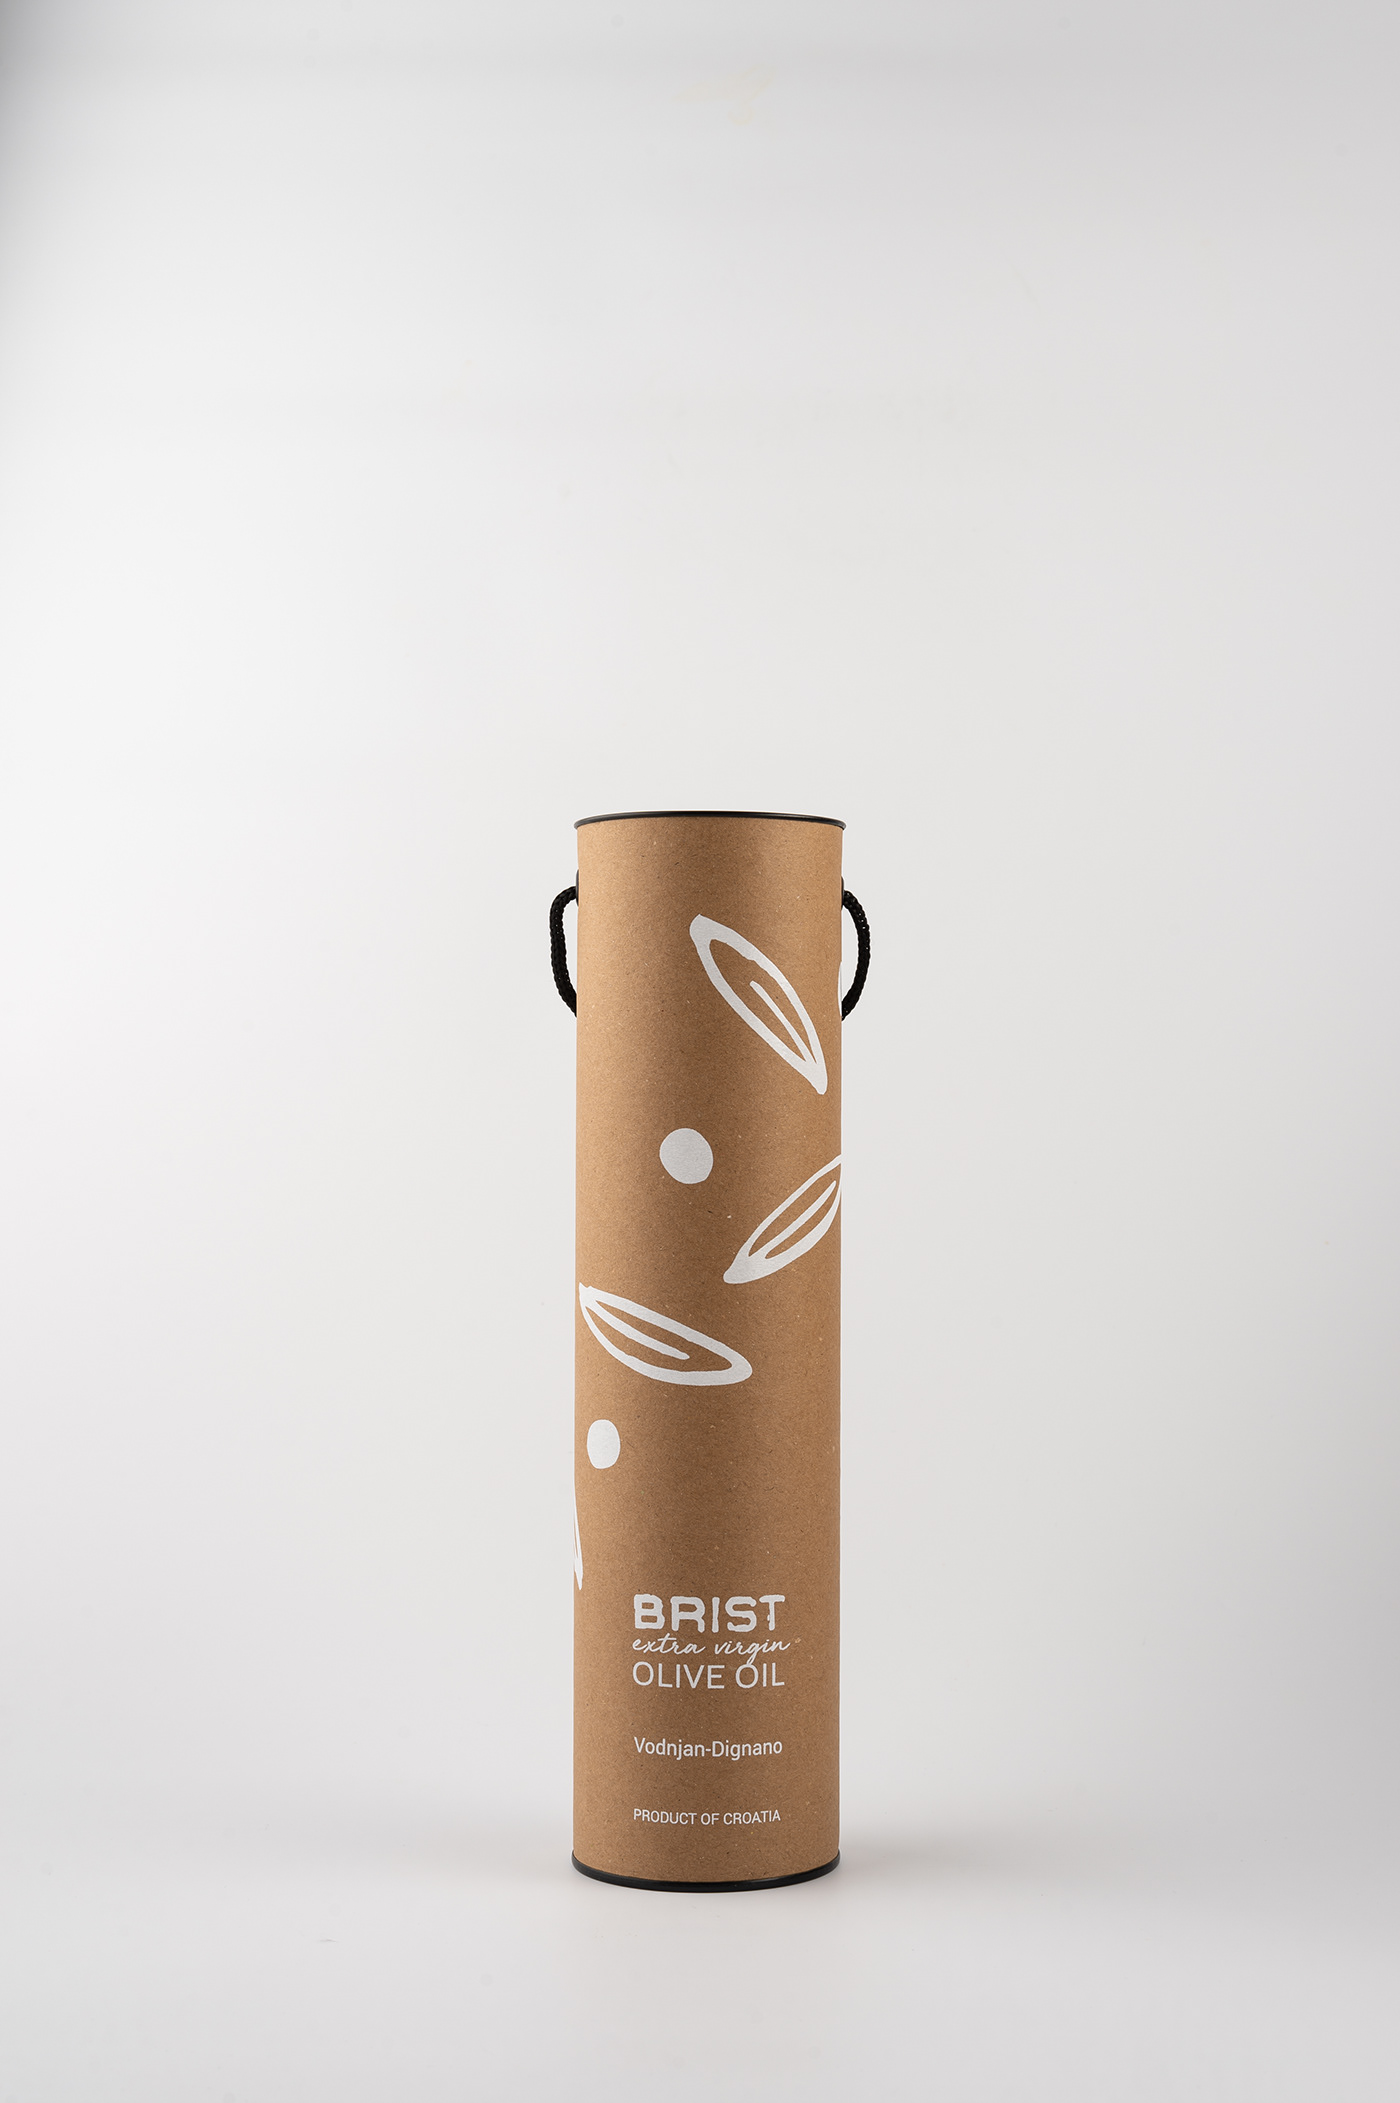 brist olive oil product Packaging Photography  packing Pack bottle